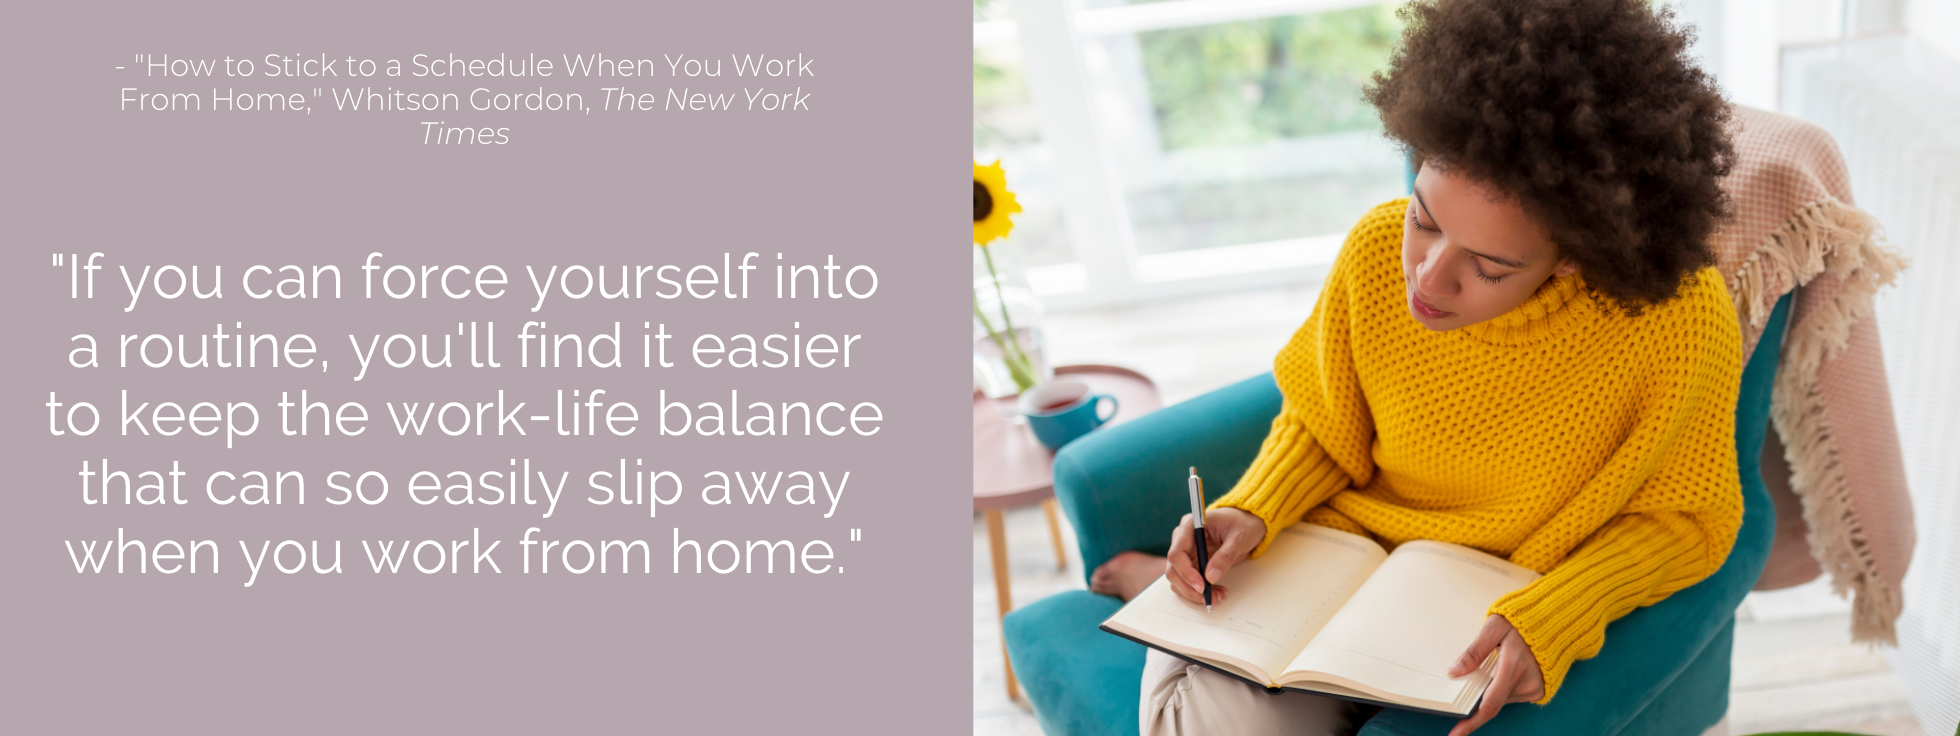 If you can force yourself into a routine, you'll find it easier to keep the work-life balance that can so easily slip away when you work from home.